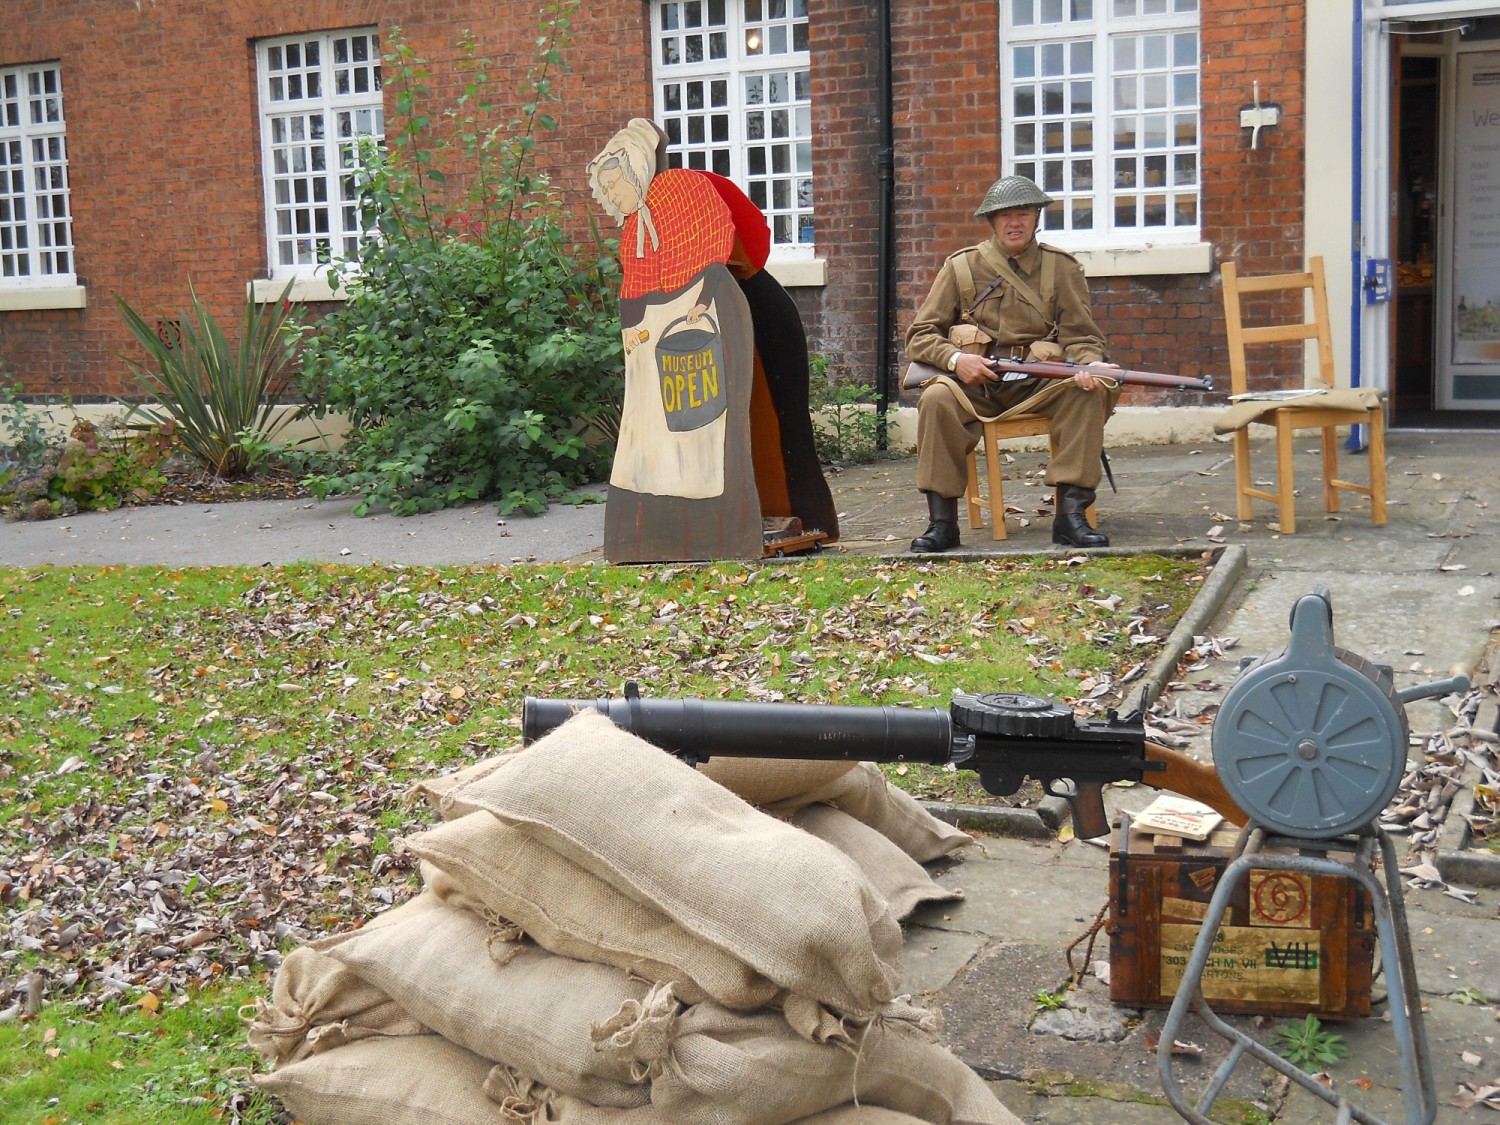 Northwich Guardian: Re-enactors from the Cheshire Home Guard will how visitors what life was like in Northwich in the Second World War.